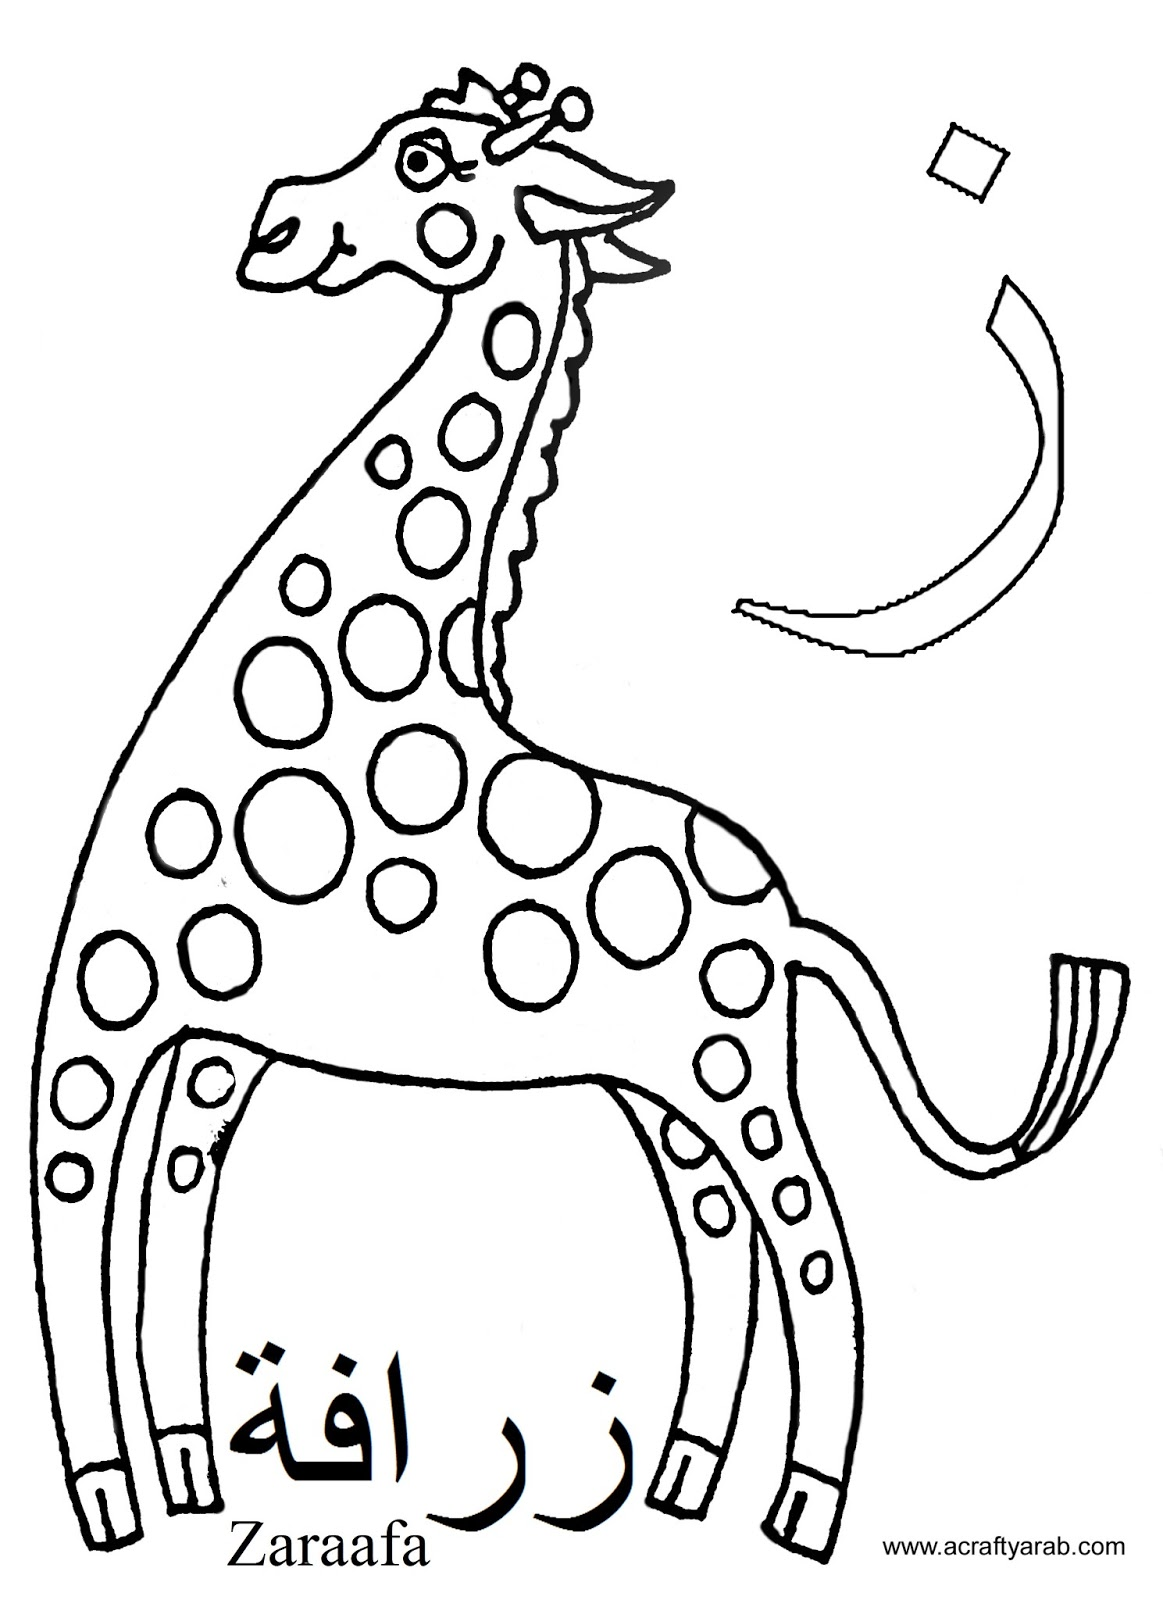 Children In Need Colouring Pages 2011